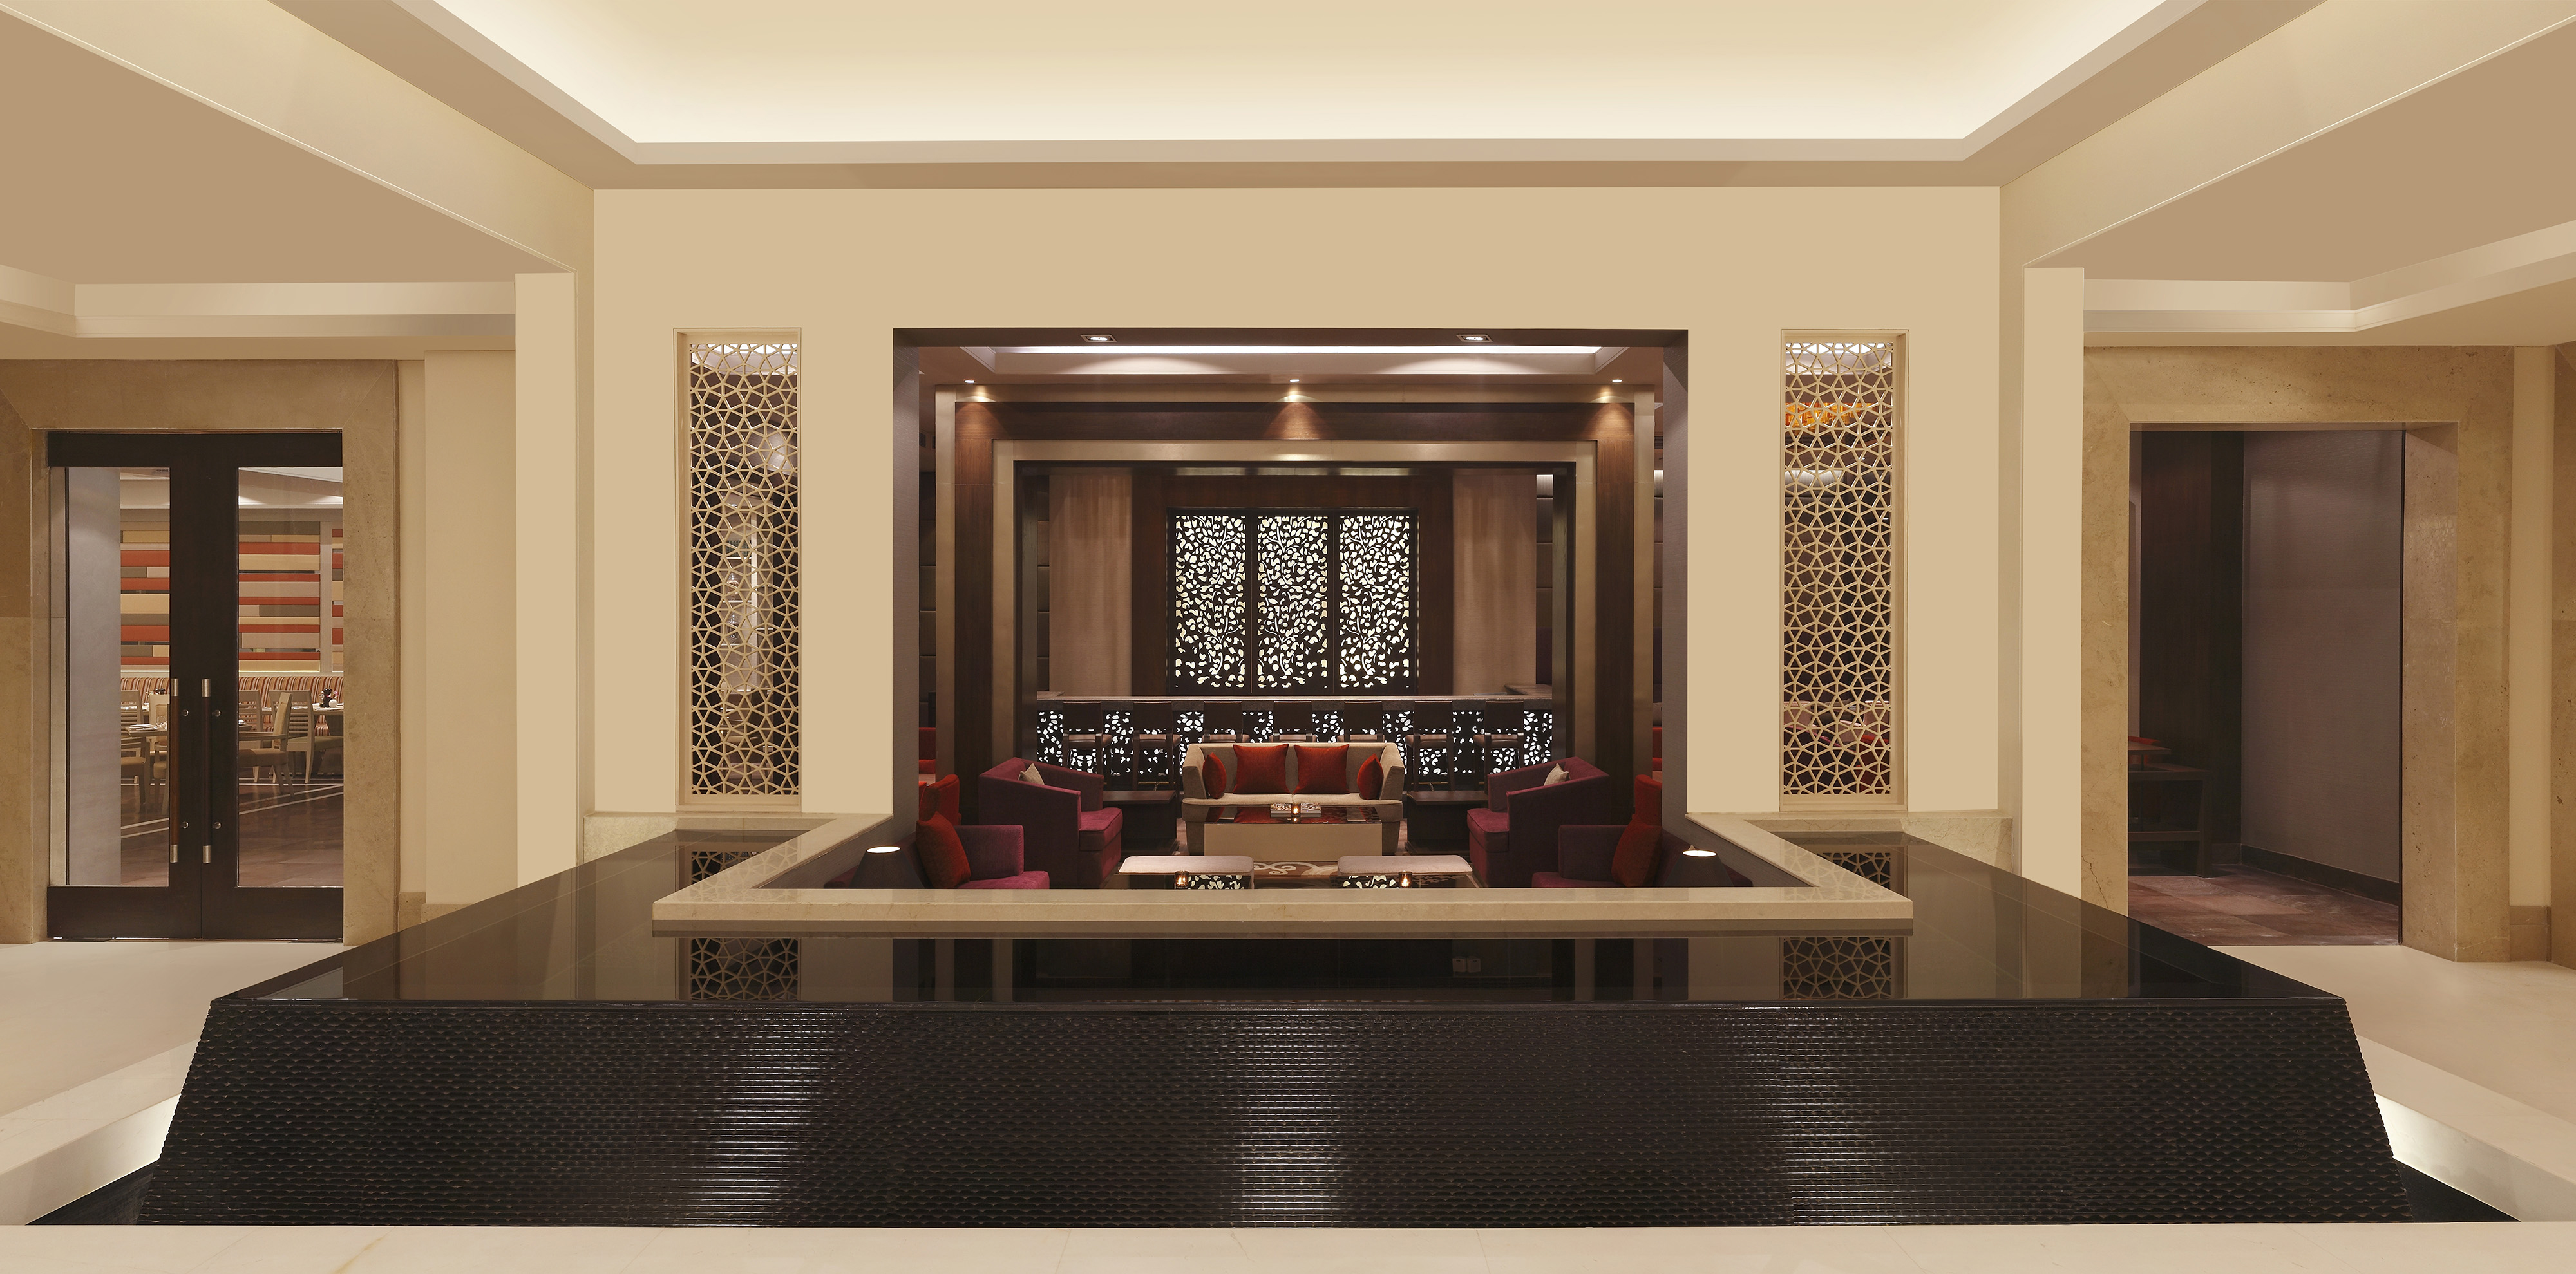 DoubleTree-by-Hilton-Agra-Bar